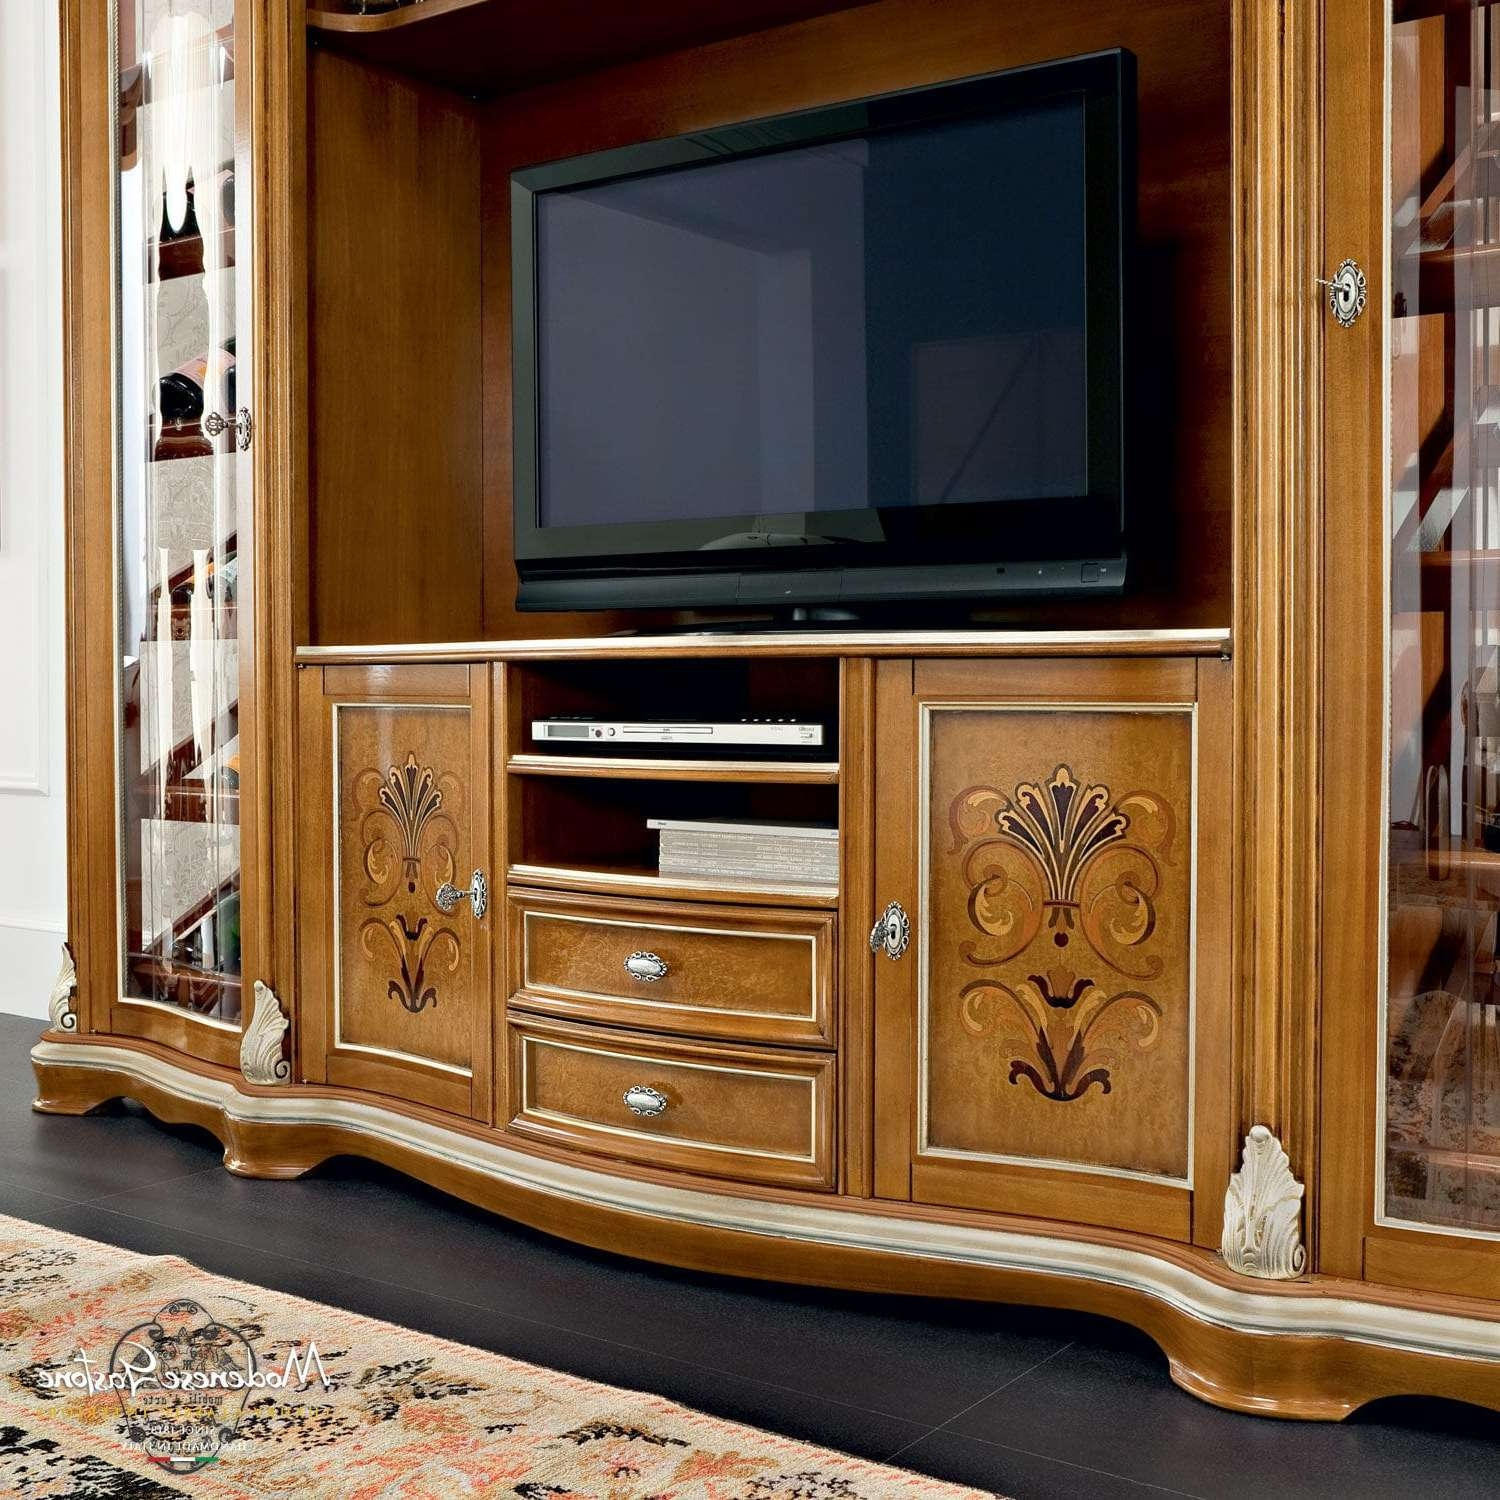 Classic Tv Cabinet / Solid Wood – Bella Vita – Modenese Gastone With Regard To Wooden Tv Cabinets (View 12 of 20)